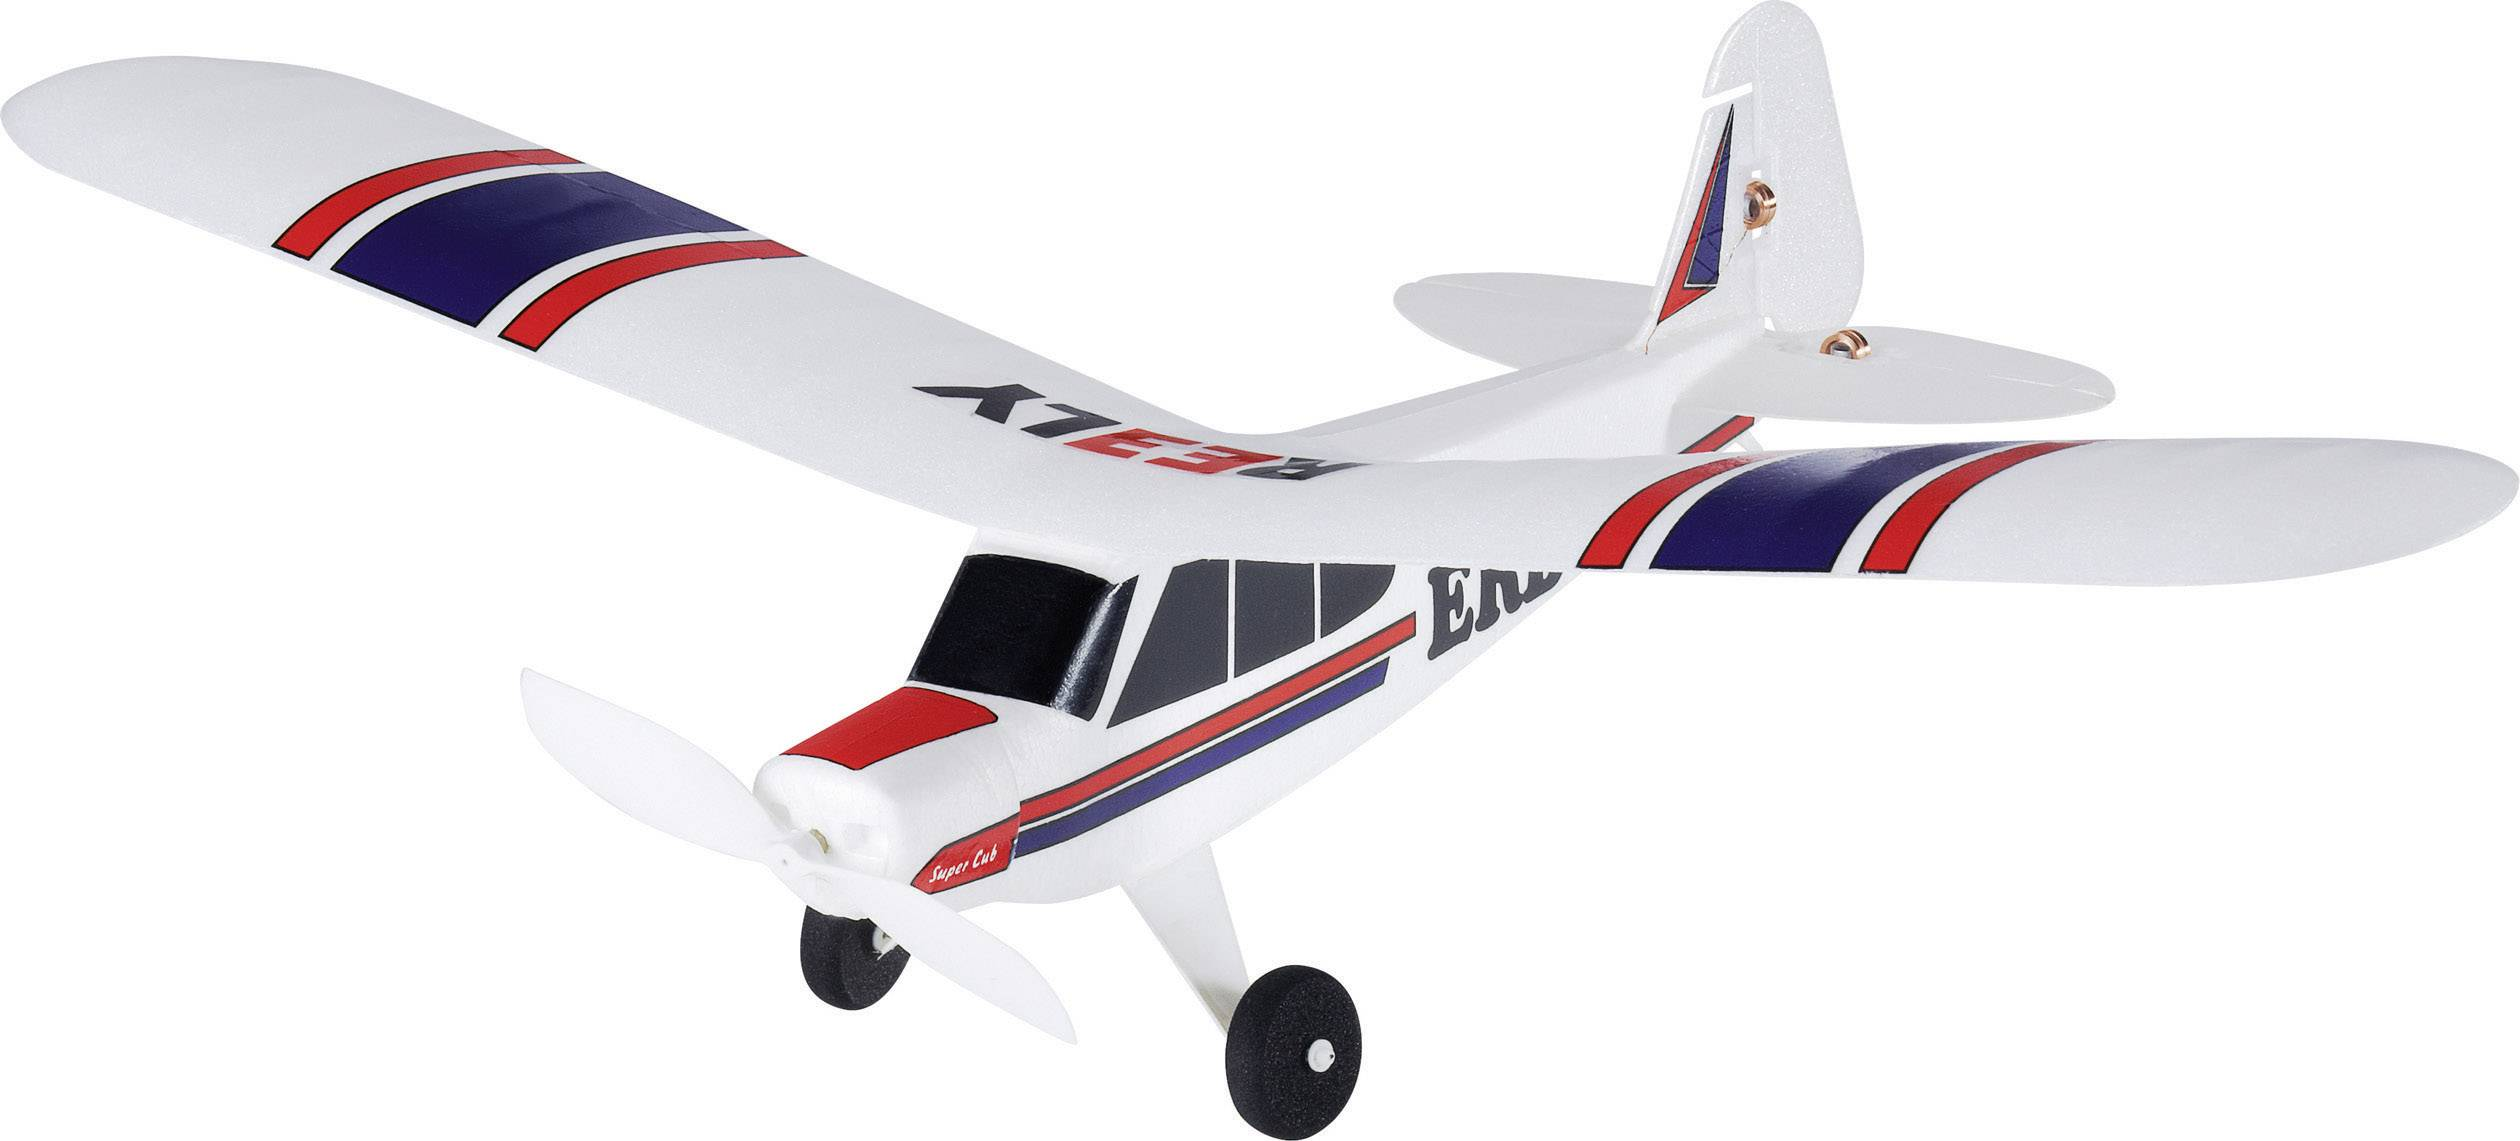 RC model lietadla Reely Super Cub, RtF, 348 mm